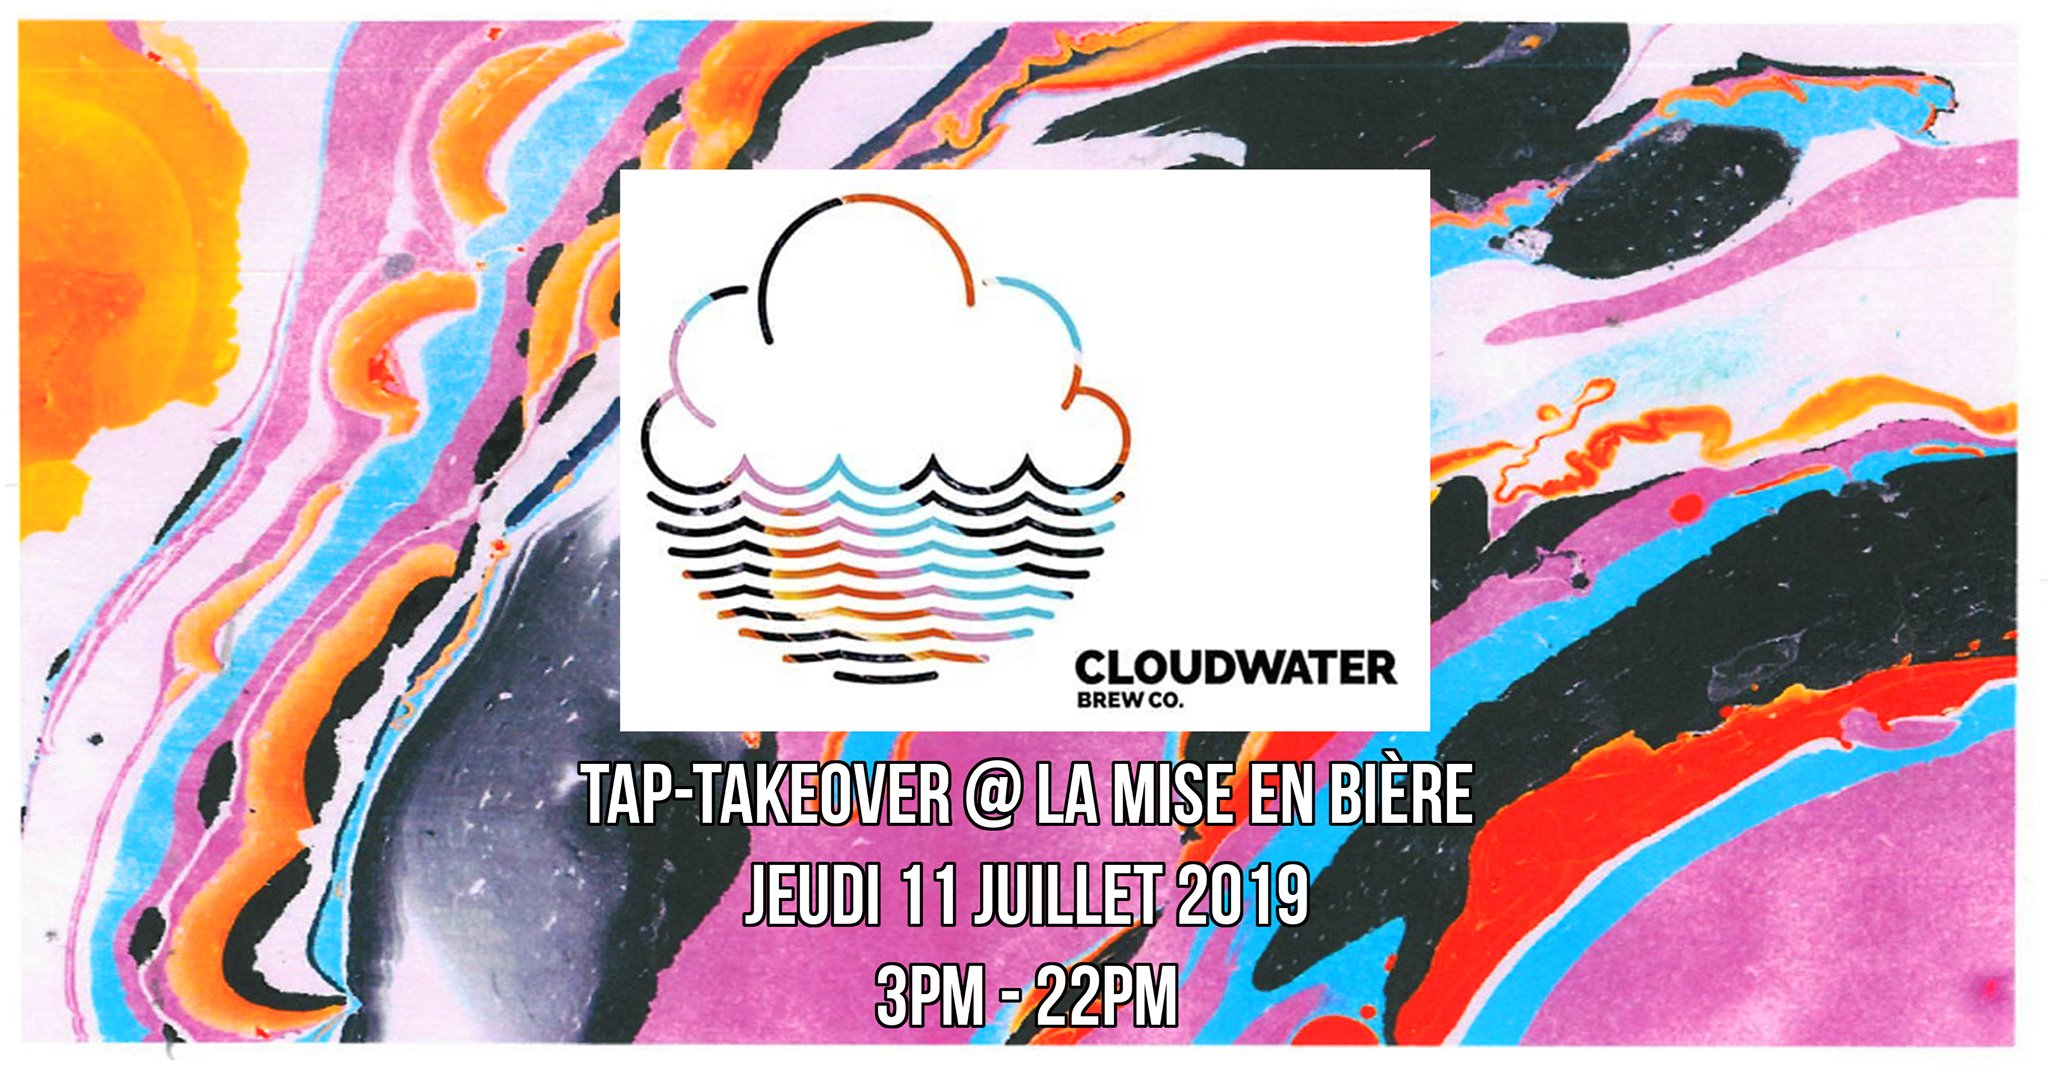 11.07.19 - TTO Cloudwater